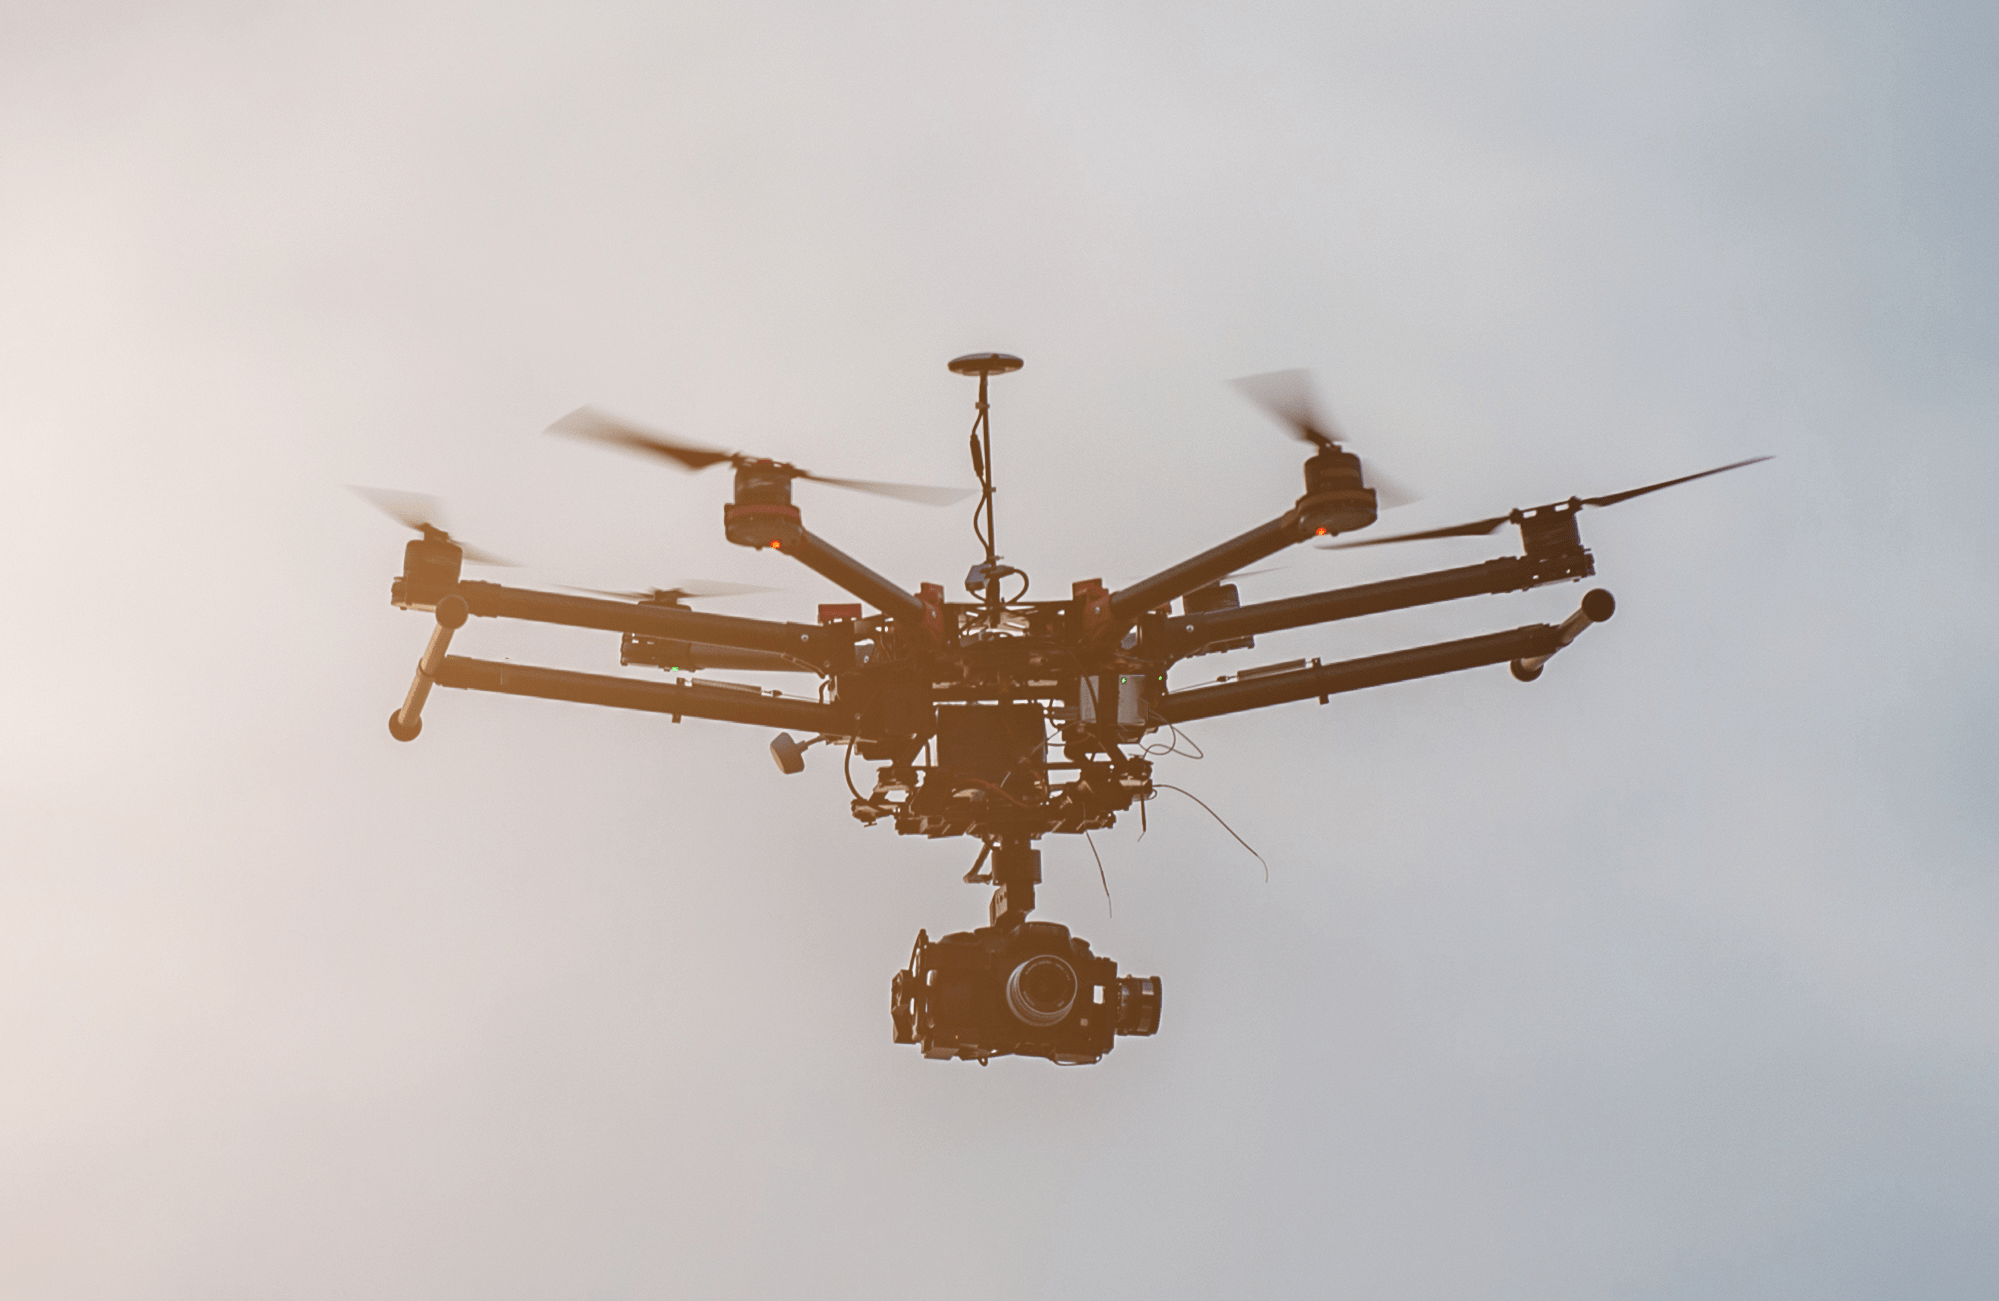 38 Ways Drones Will Impact Society: From Fighting War To